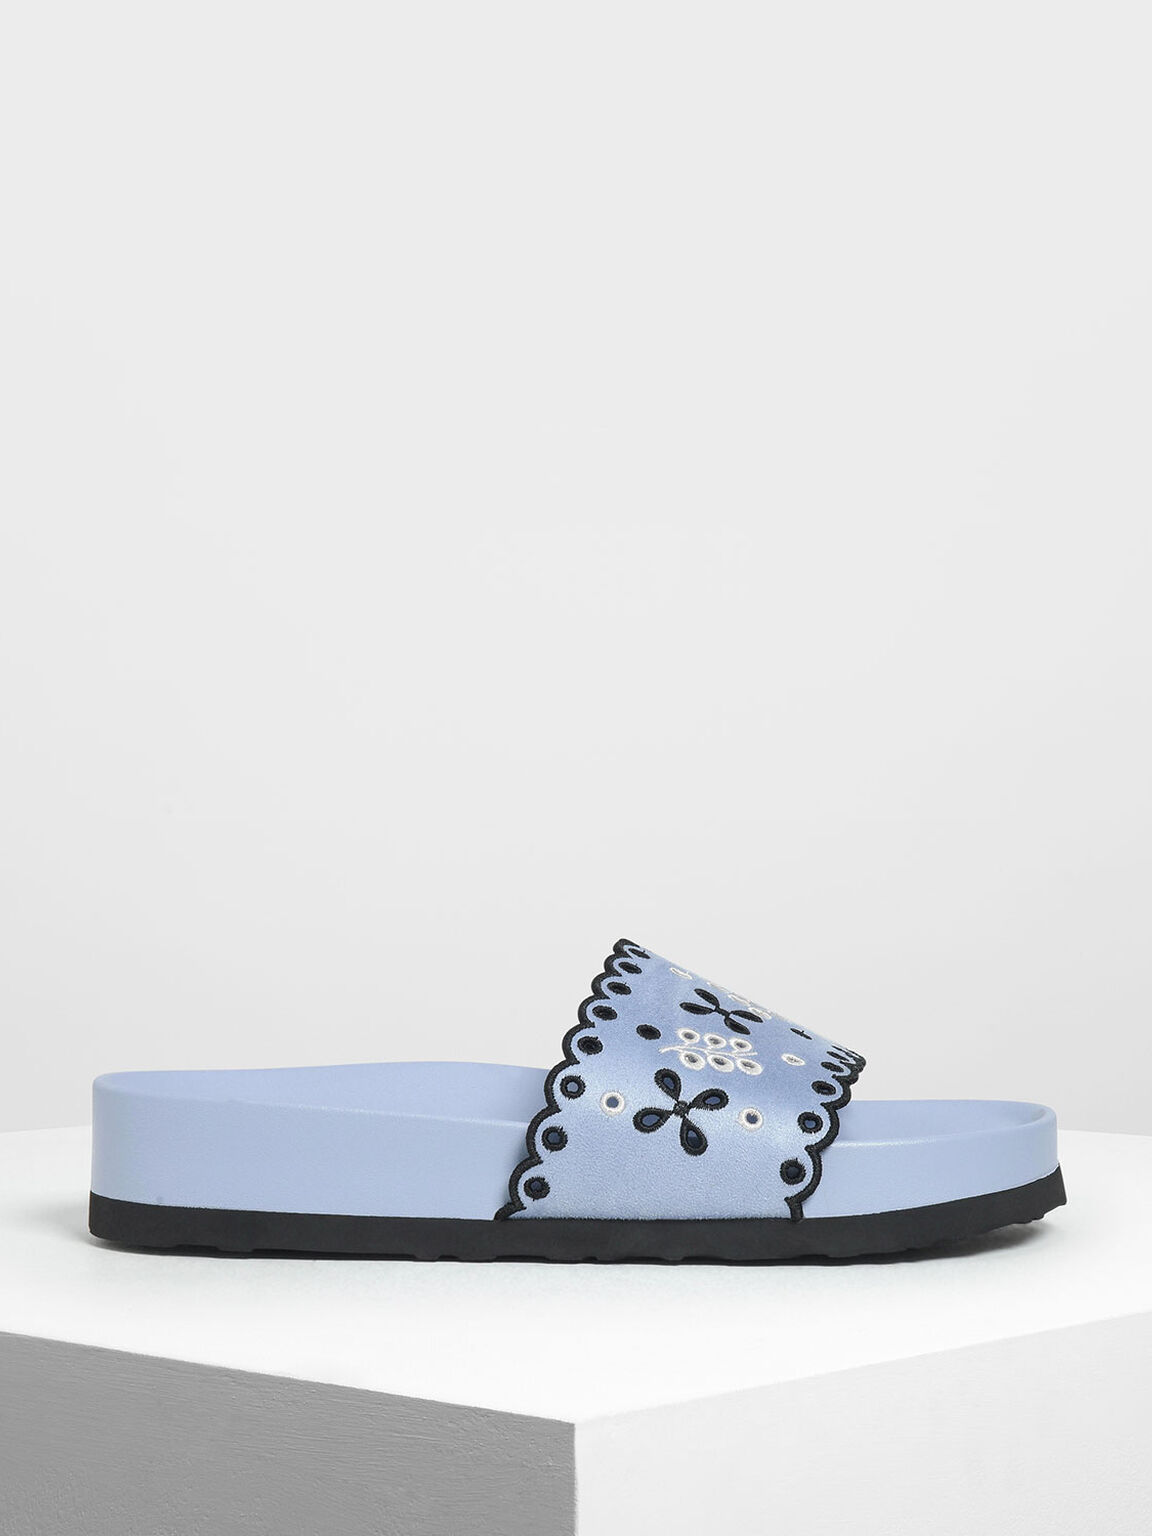 Scalloped Floral Suede Slide Sandals, Light Blue, hi-res